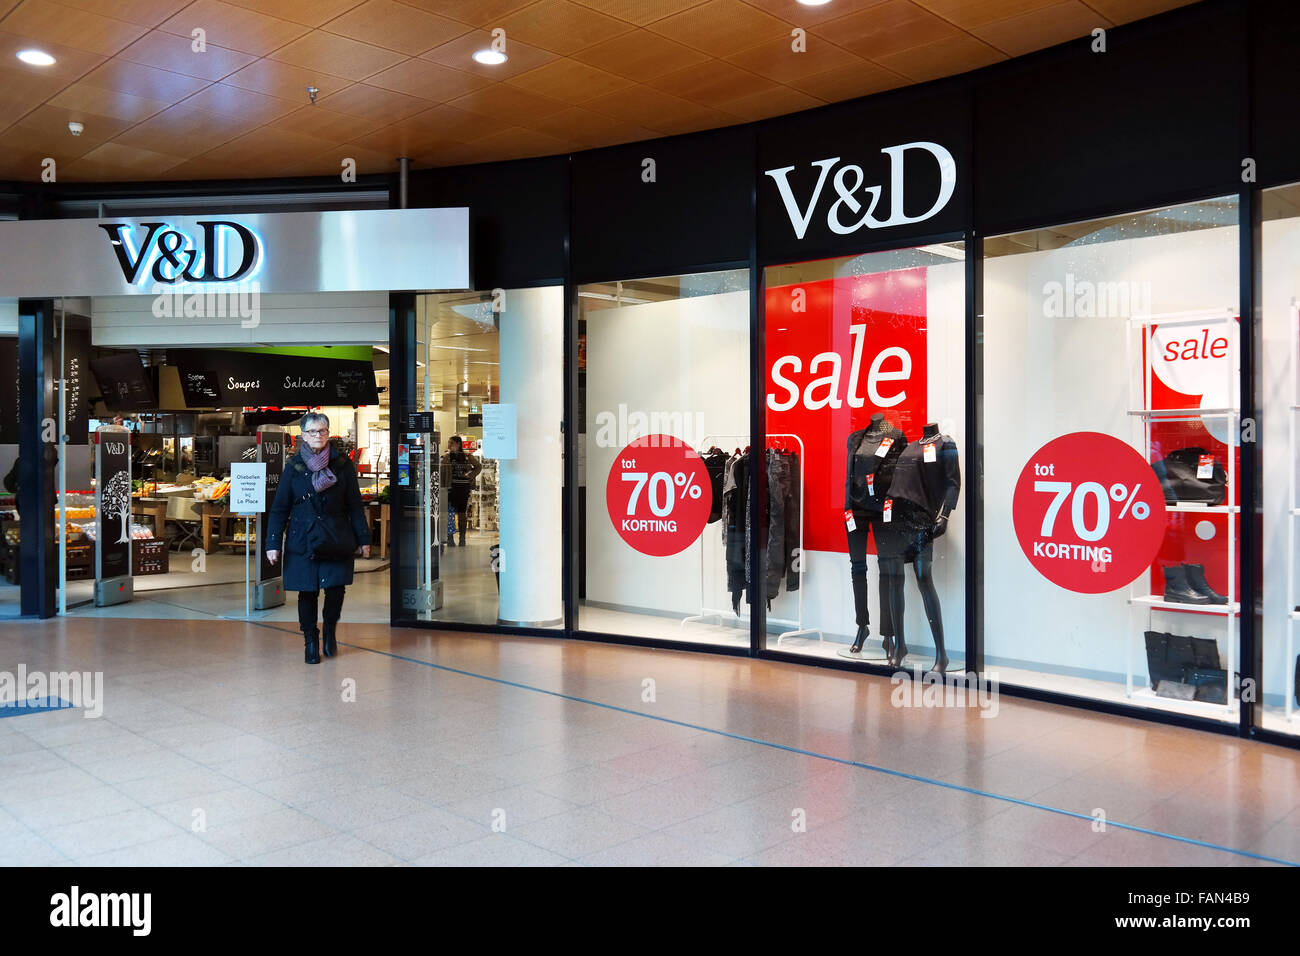 Vroom & Dreesmann (also known as V&D) is a bankrupt Dutch chain of department stores - Stock Image